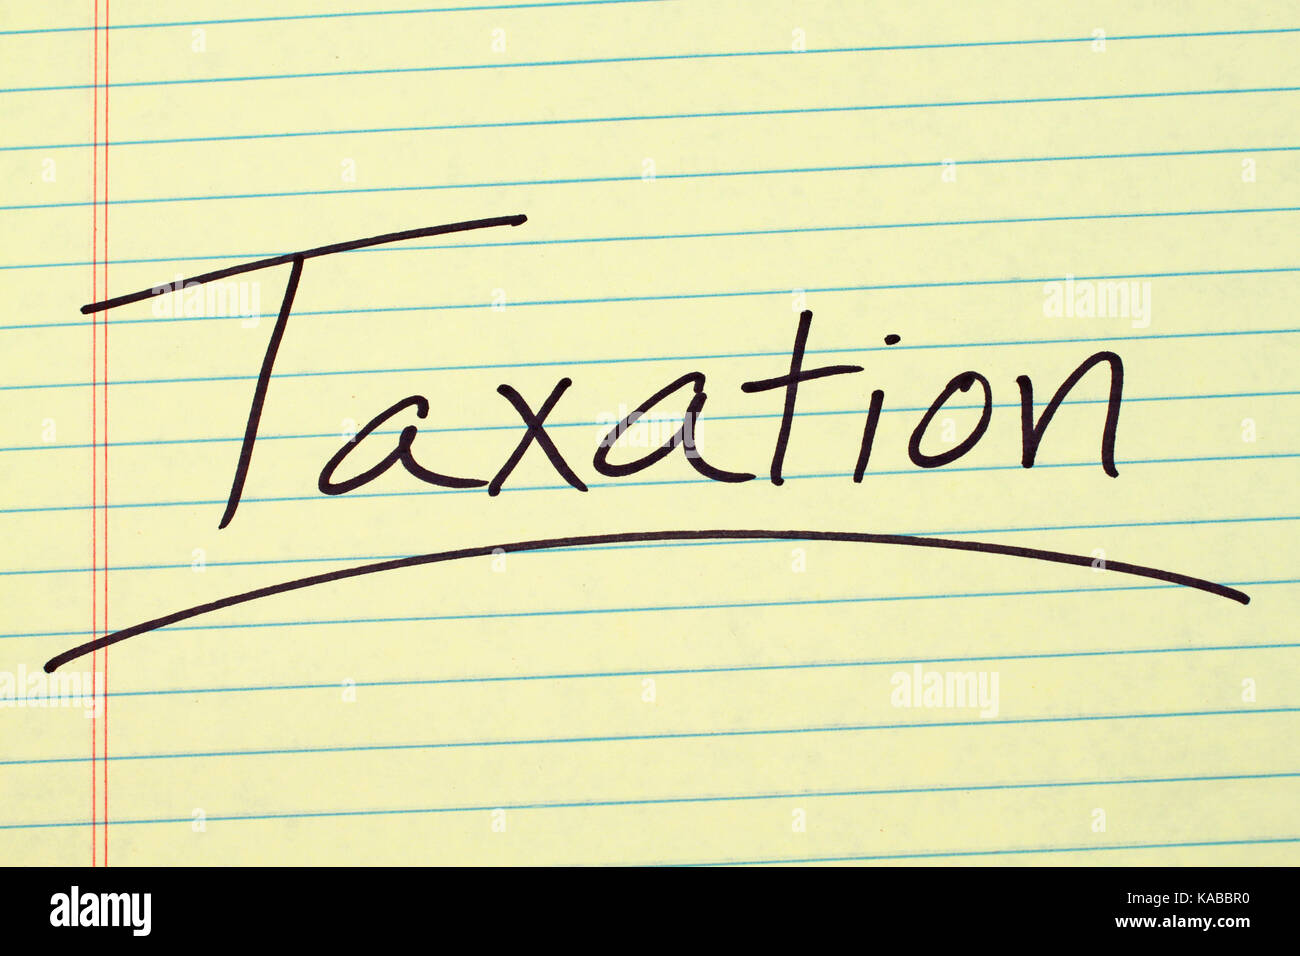 The word 'Taxation' underlined on a yellow legal pad - Stock Image